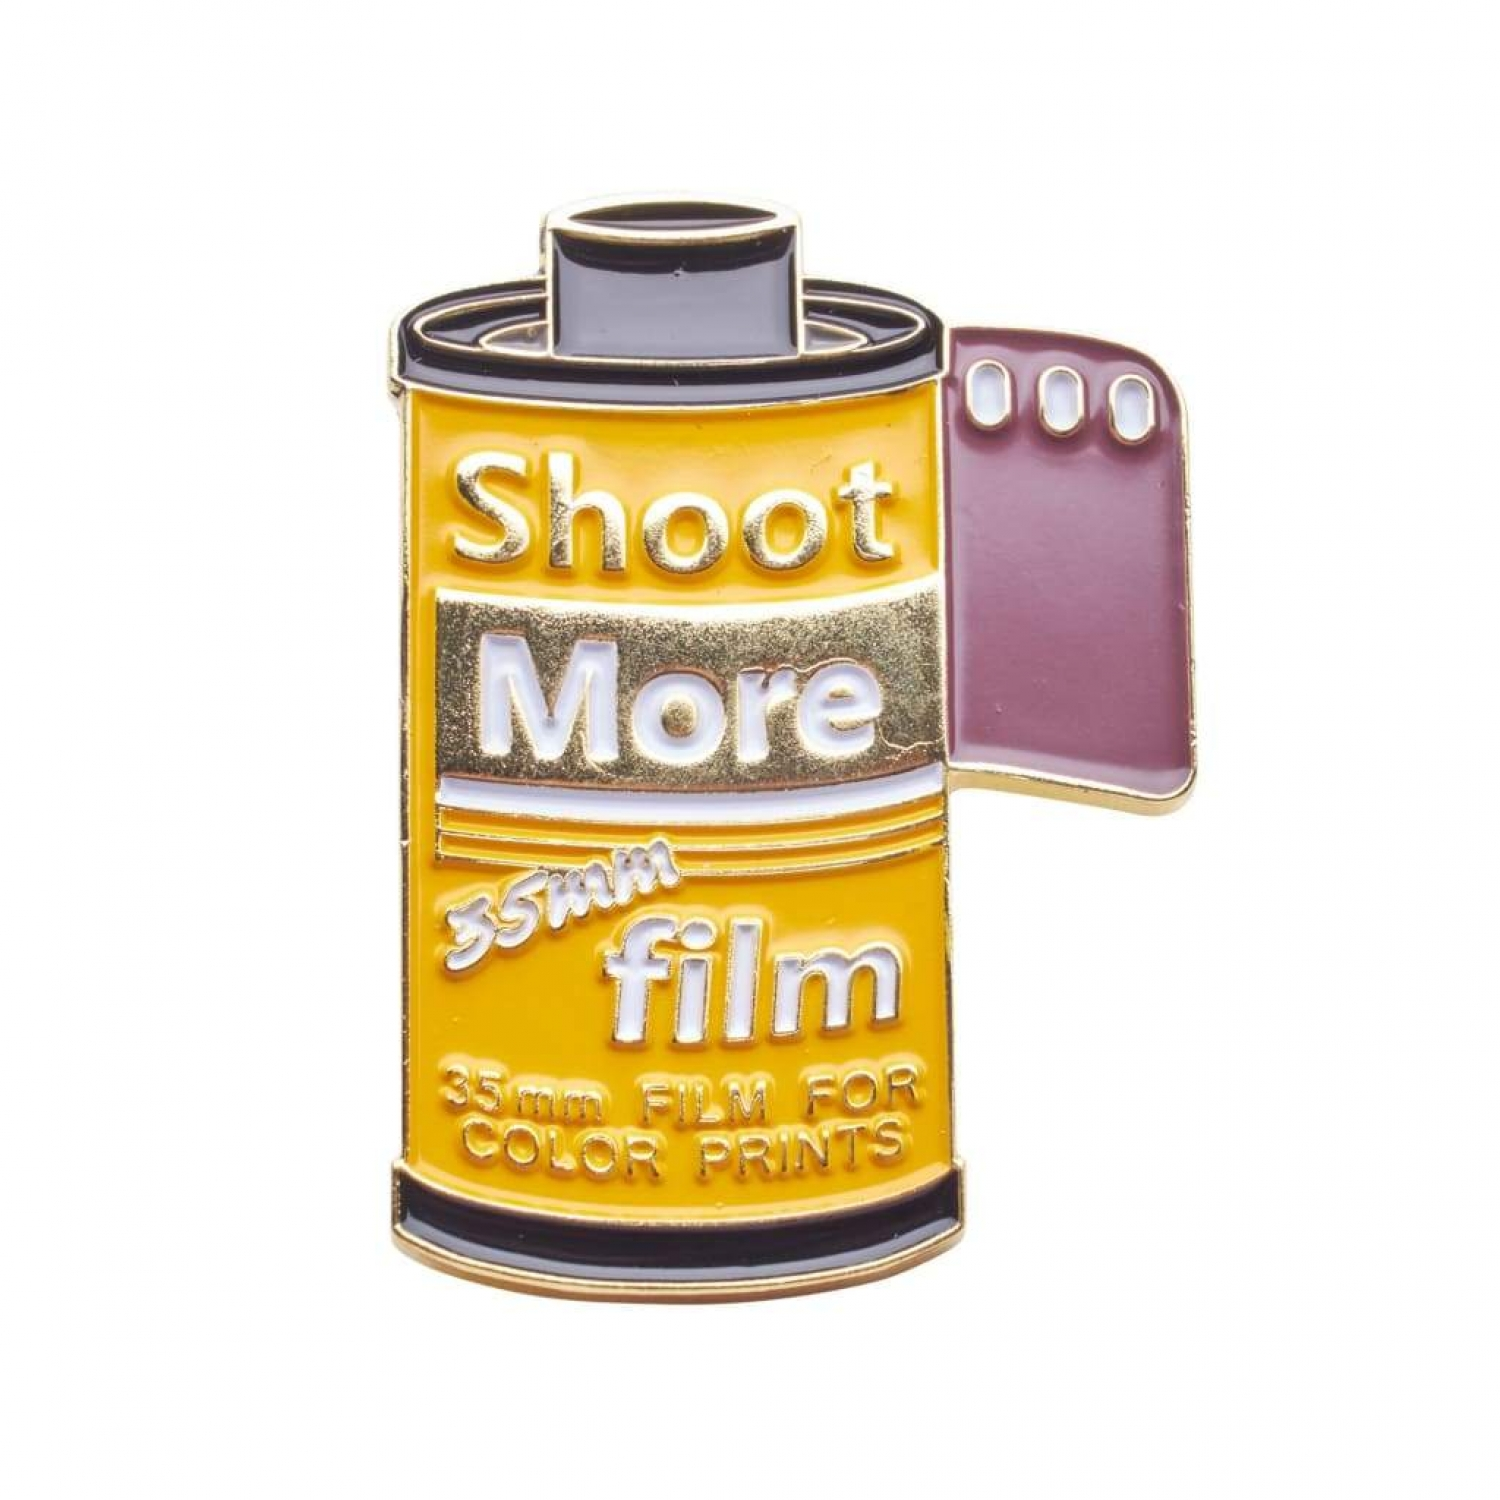 Shoot More 35mm Film Pin